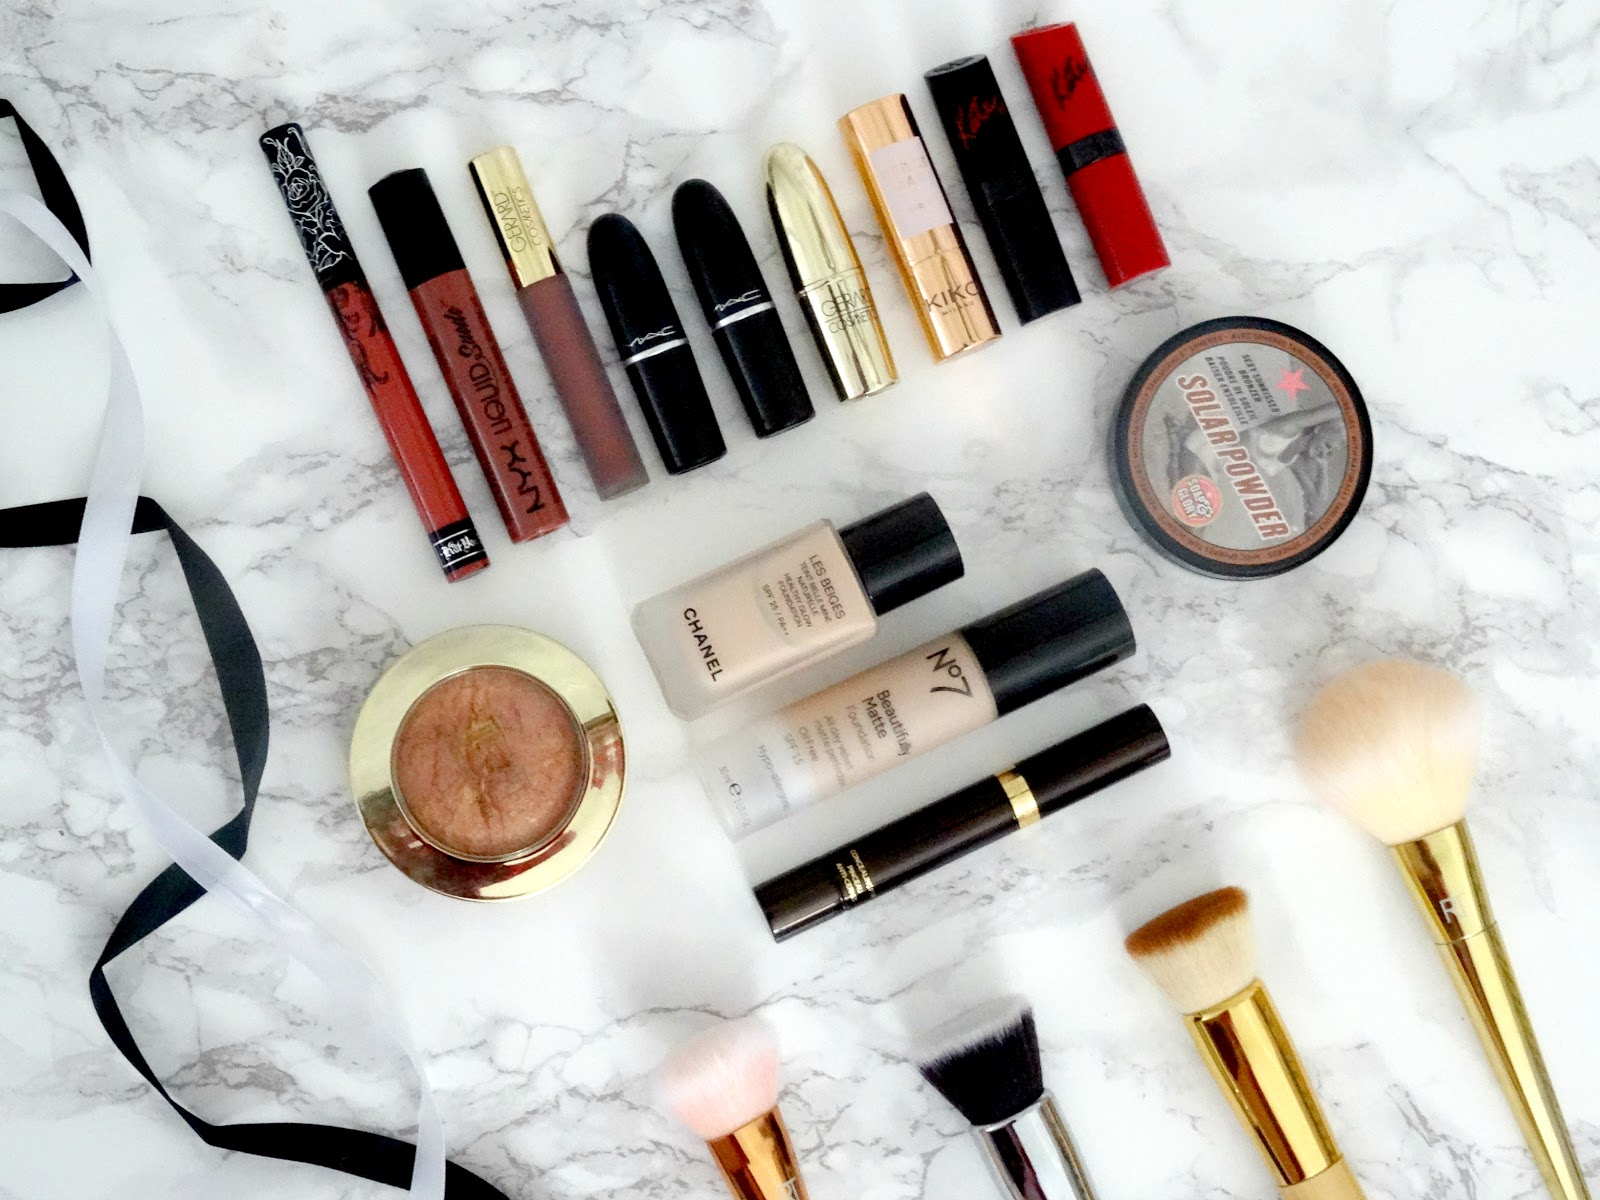 An array of highend and drugstore makeup